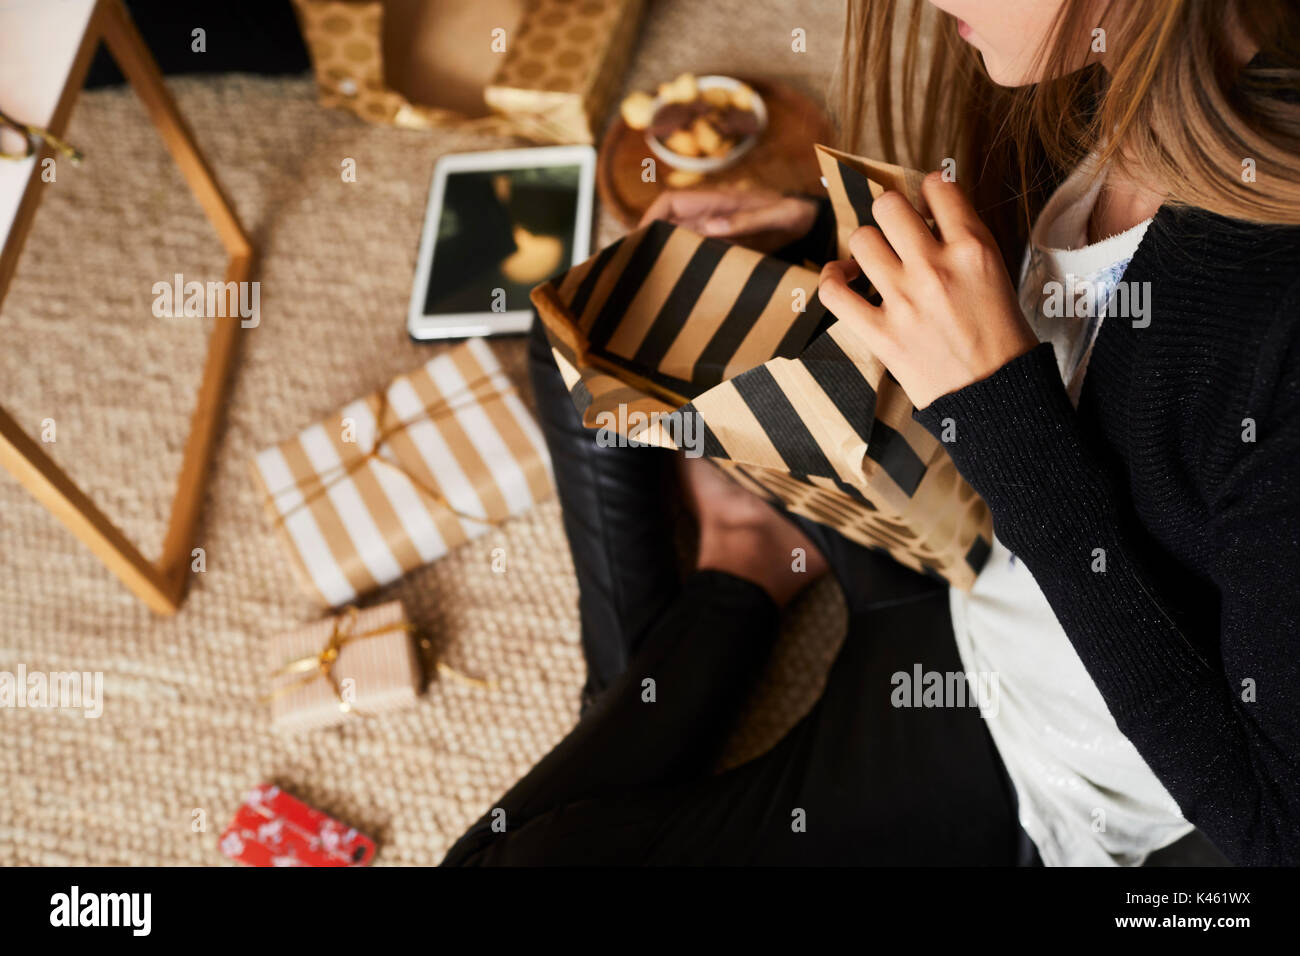 Girl at Christmas Eve, unpacking presents, detail - Stock Image